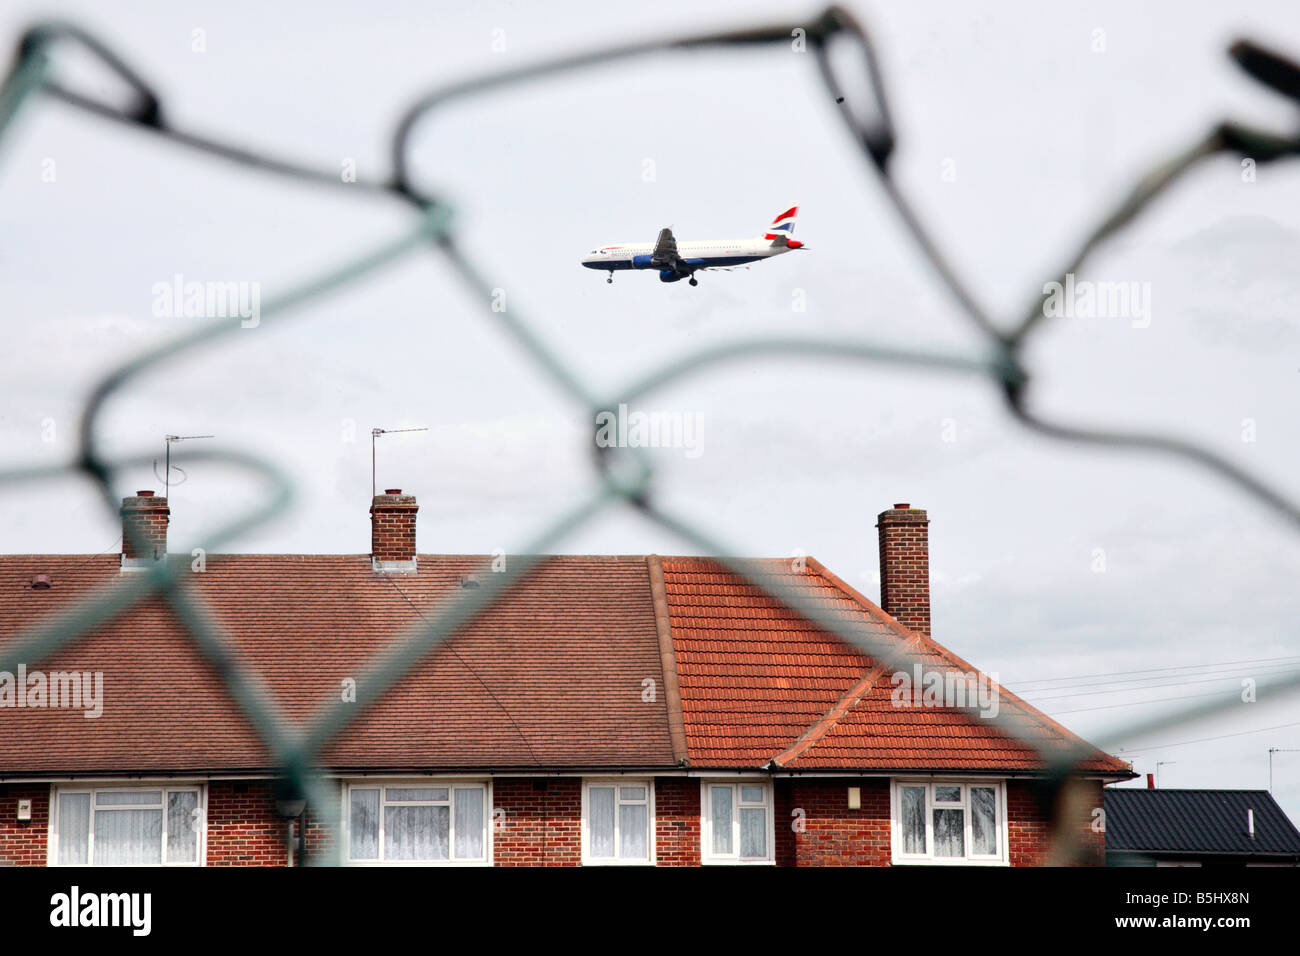 plane coming into land at heathrow london - Stock Image